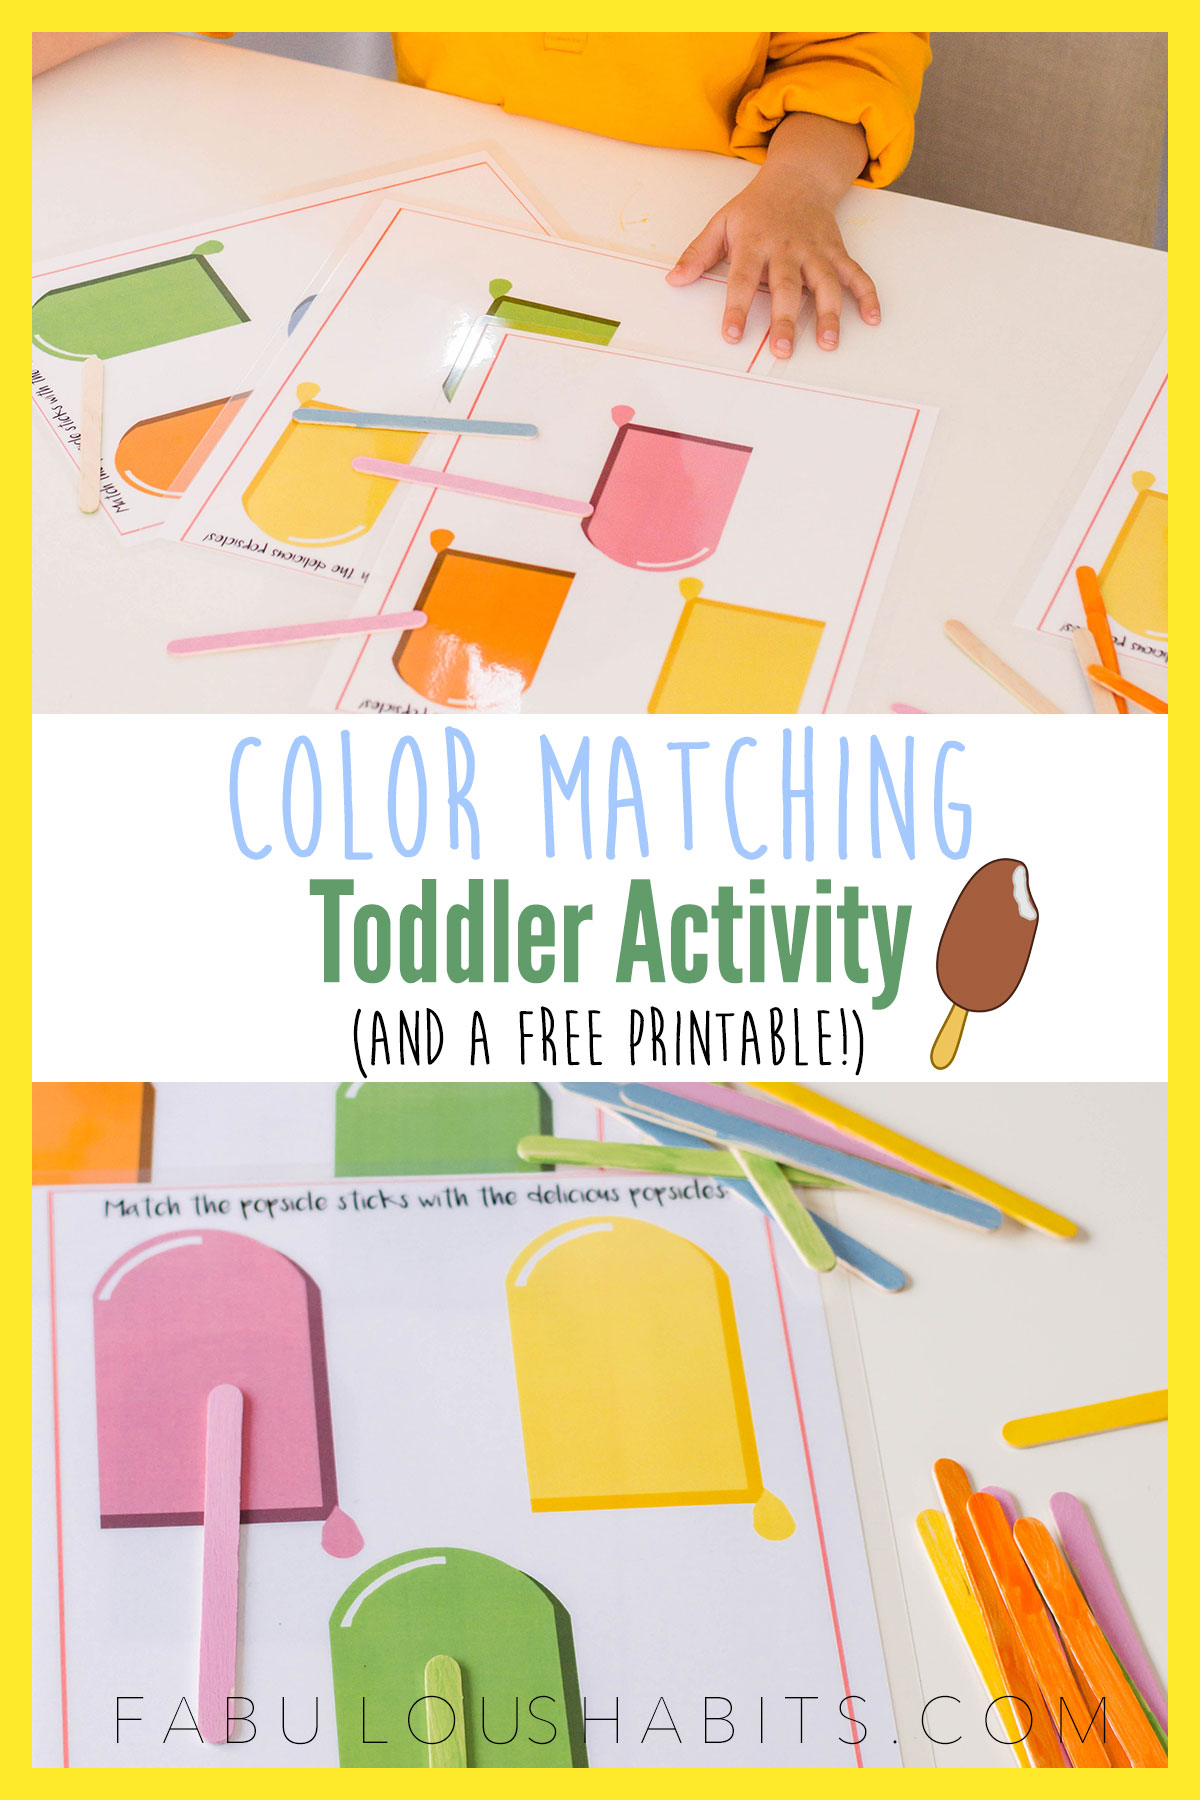 Looking for an easy STEM activity for your preschooler? This color matching activity uses popsicle sticks and is a super easy DIY! #toddleractivity